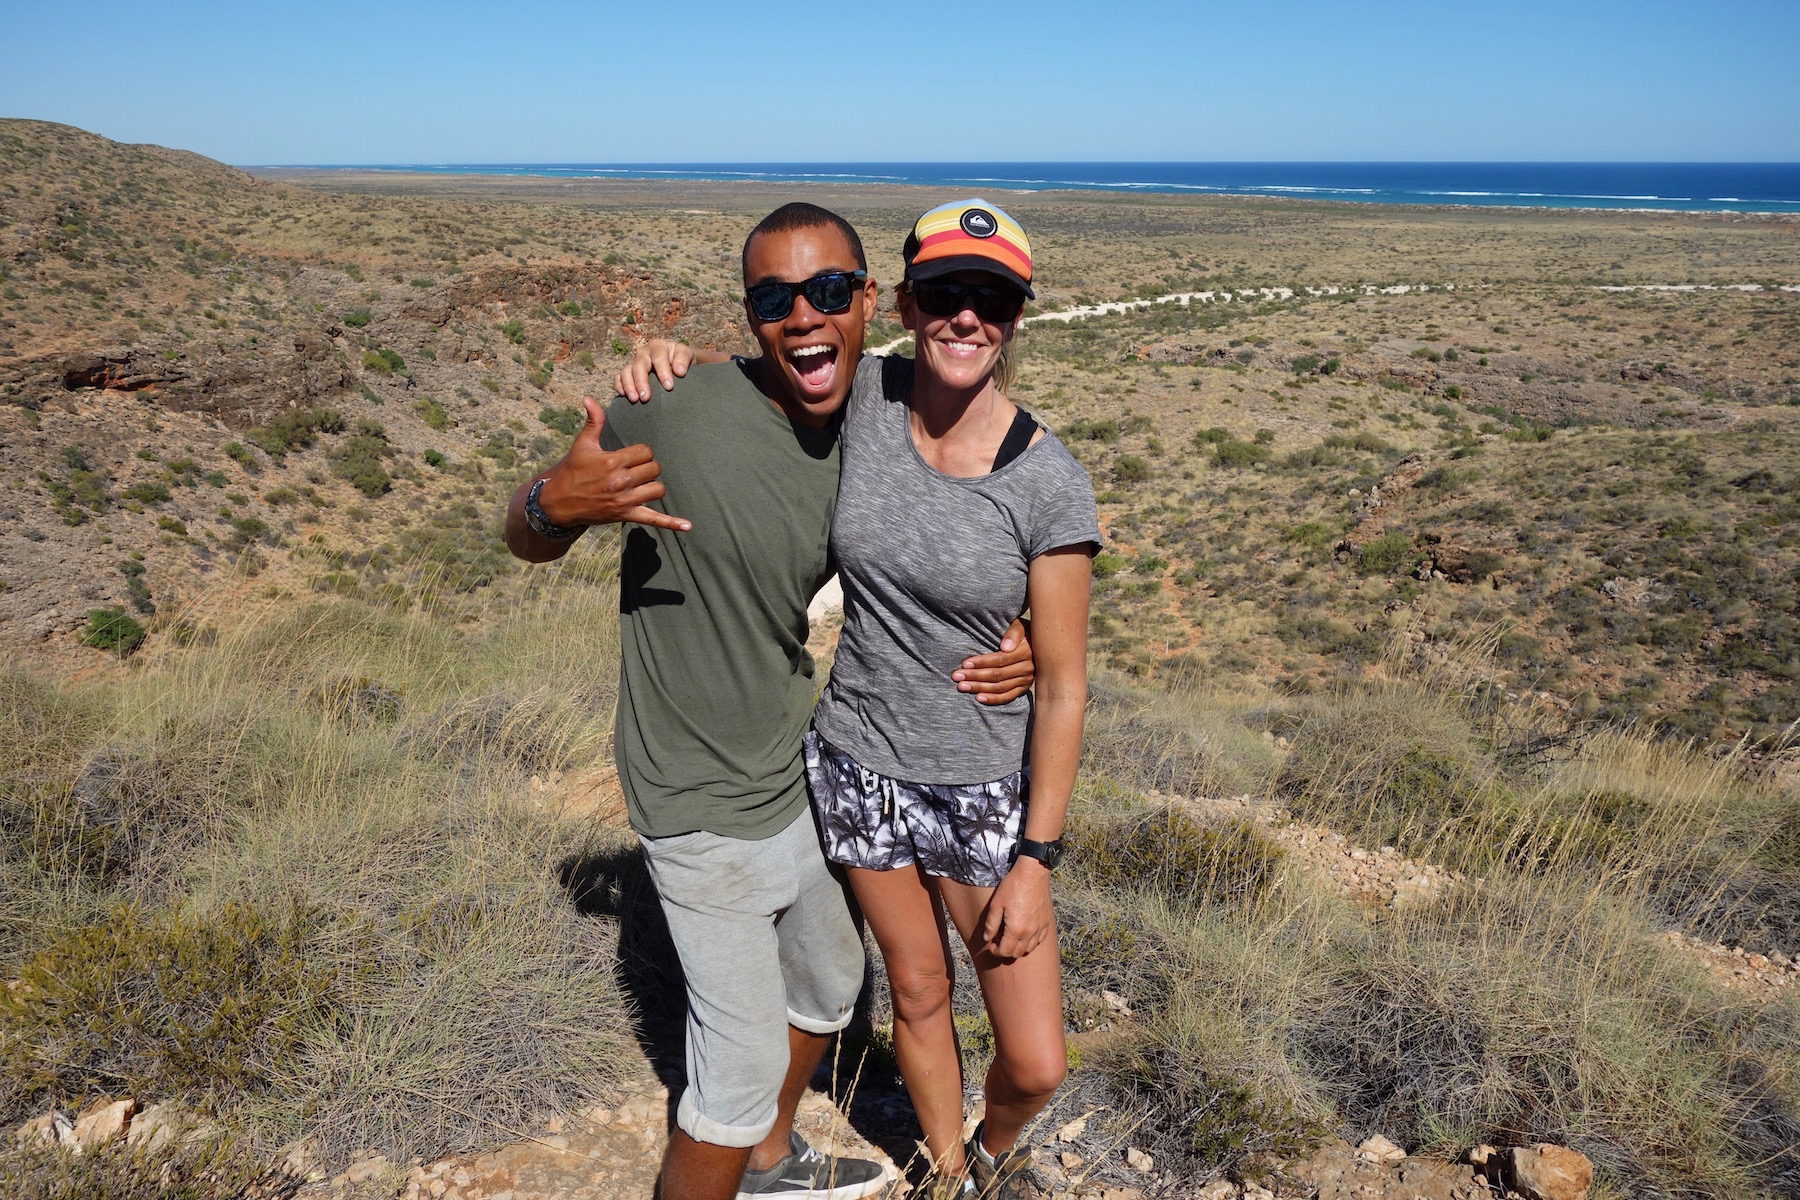 Exmouth Adventure Co, About us, Ningaloo Reef, Exmouth, Western Australia, eco tour, sea kayak, snorkel, bush walk, base camp, Arvo Cruiser, Lagoon Explorer, Big Day Out, 3 Day Reef and Beach, 5 Day Ultimate Safari, Adventure Package, Turtle Tour, team, crew, staff